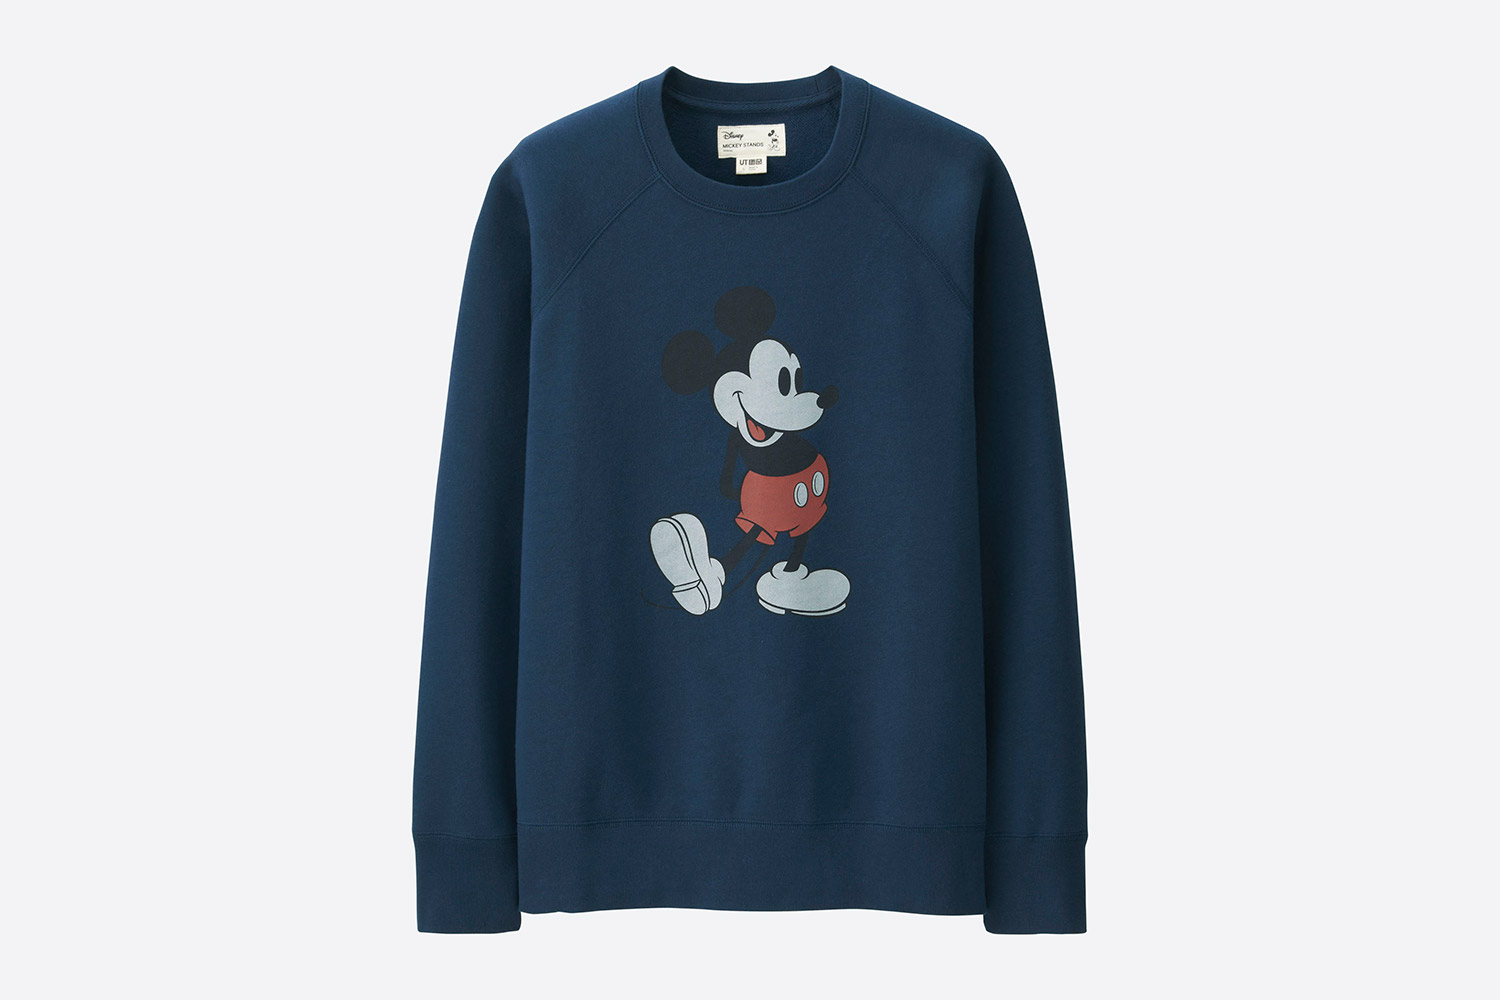 uniqlo-disney-fw17-051